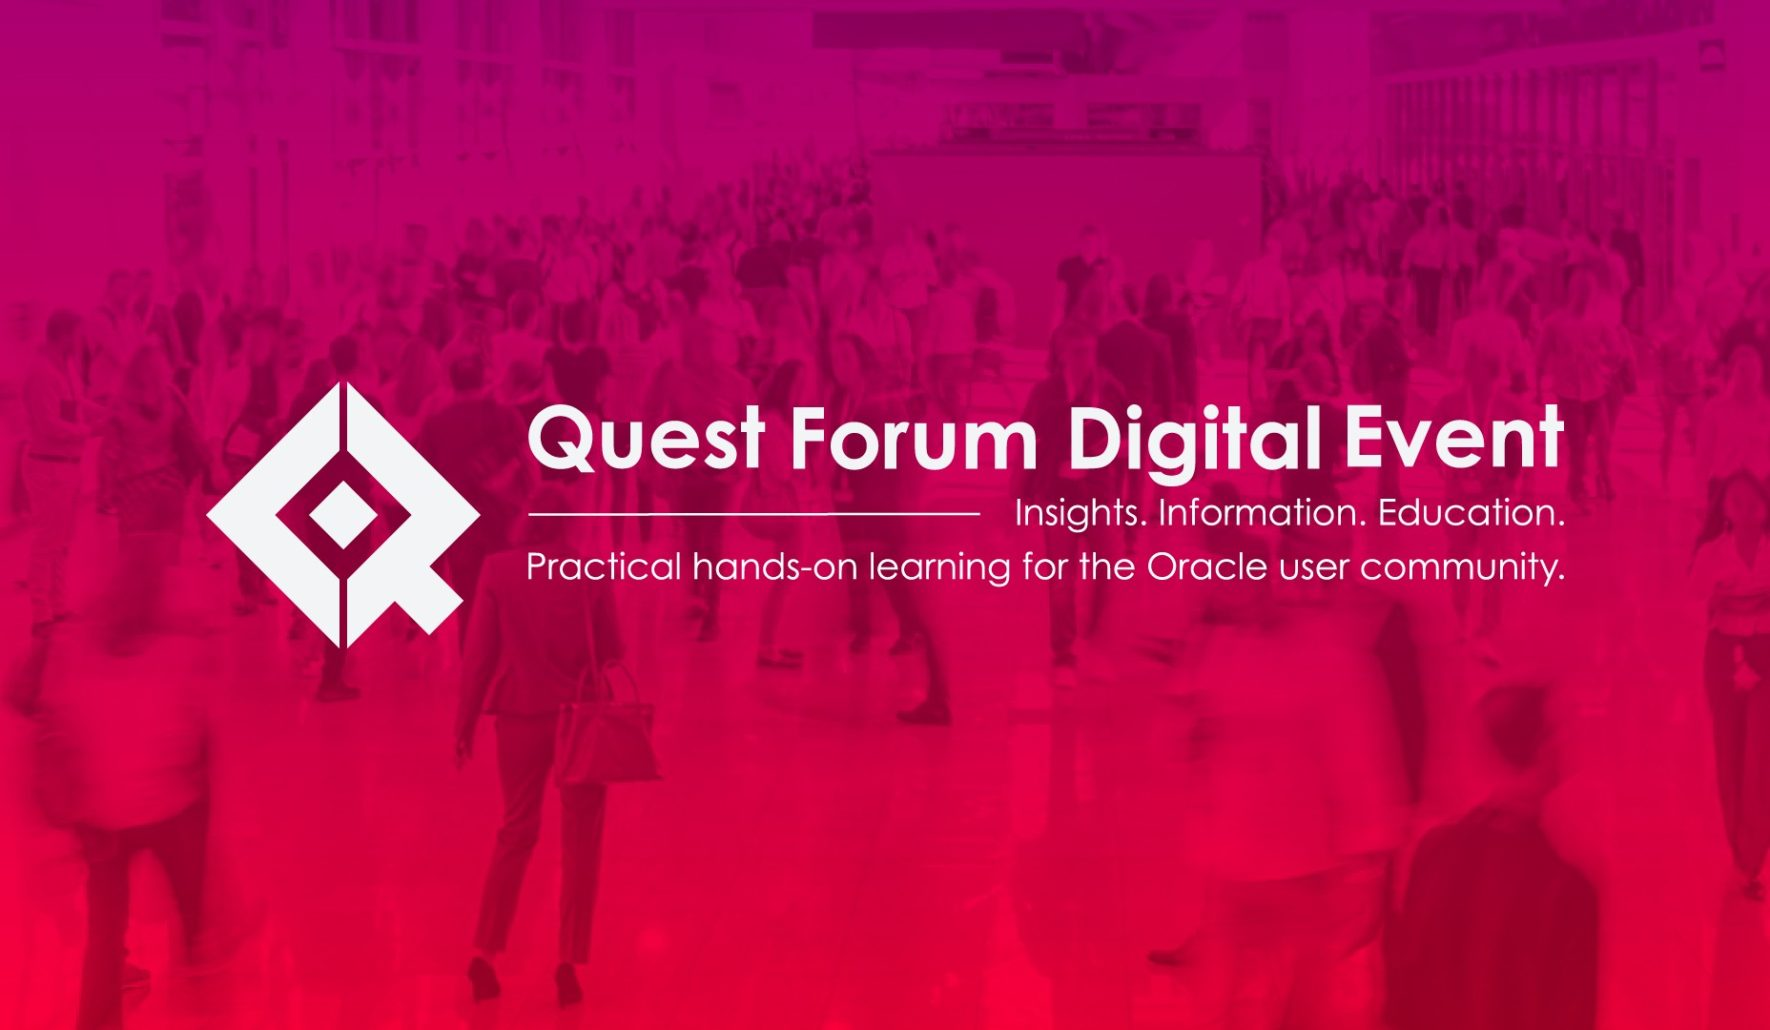 Quest Forum Digital Event